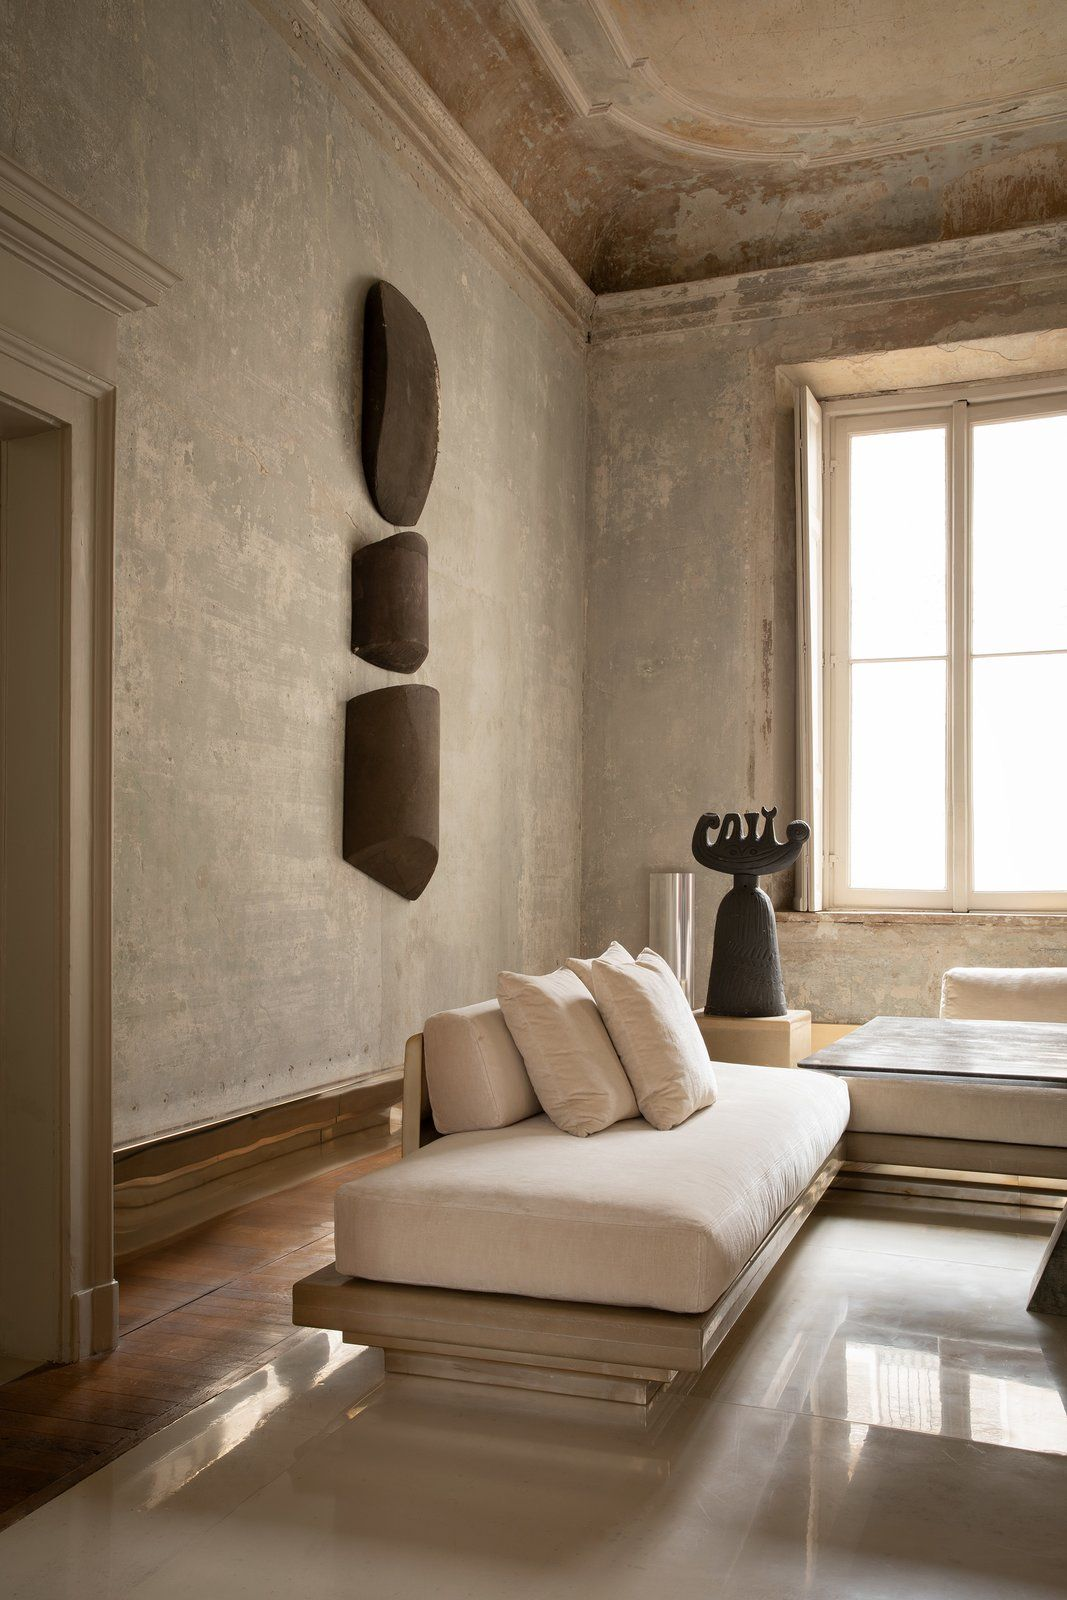 The Touch: Spaces Designed for the Senses by Kinfolk and Norm Architects